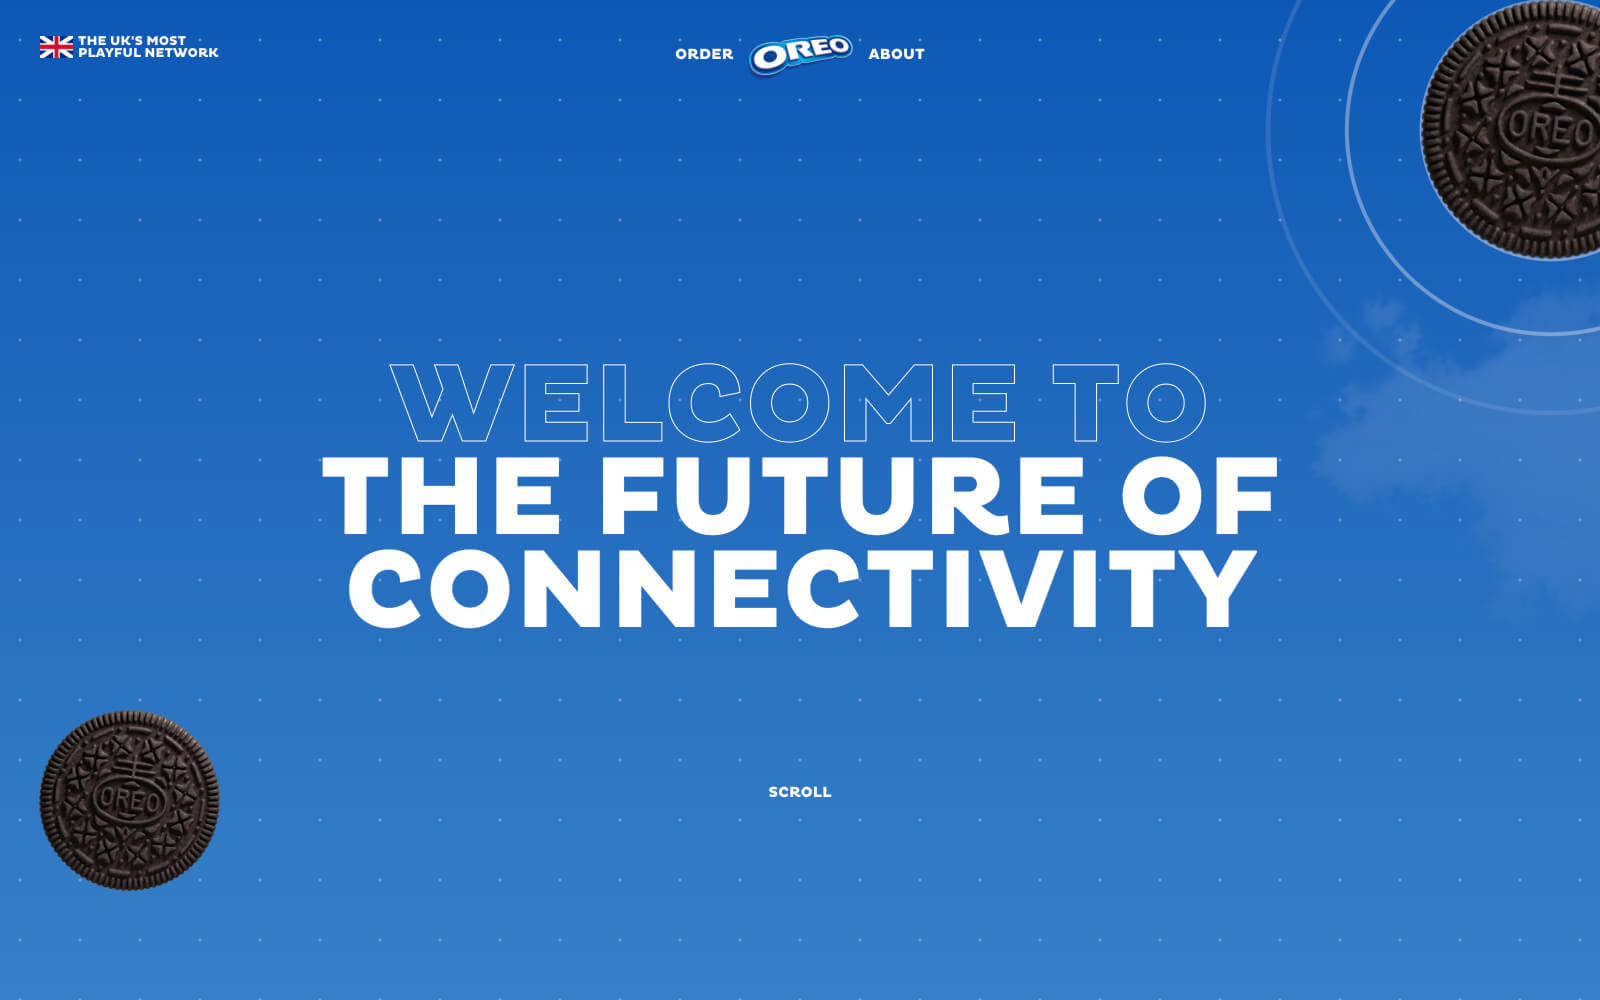 The Oreo Playful Networks website with playful animations, visuals of Oreo cookies, and inspiring descriptions.